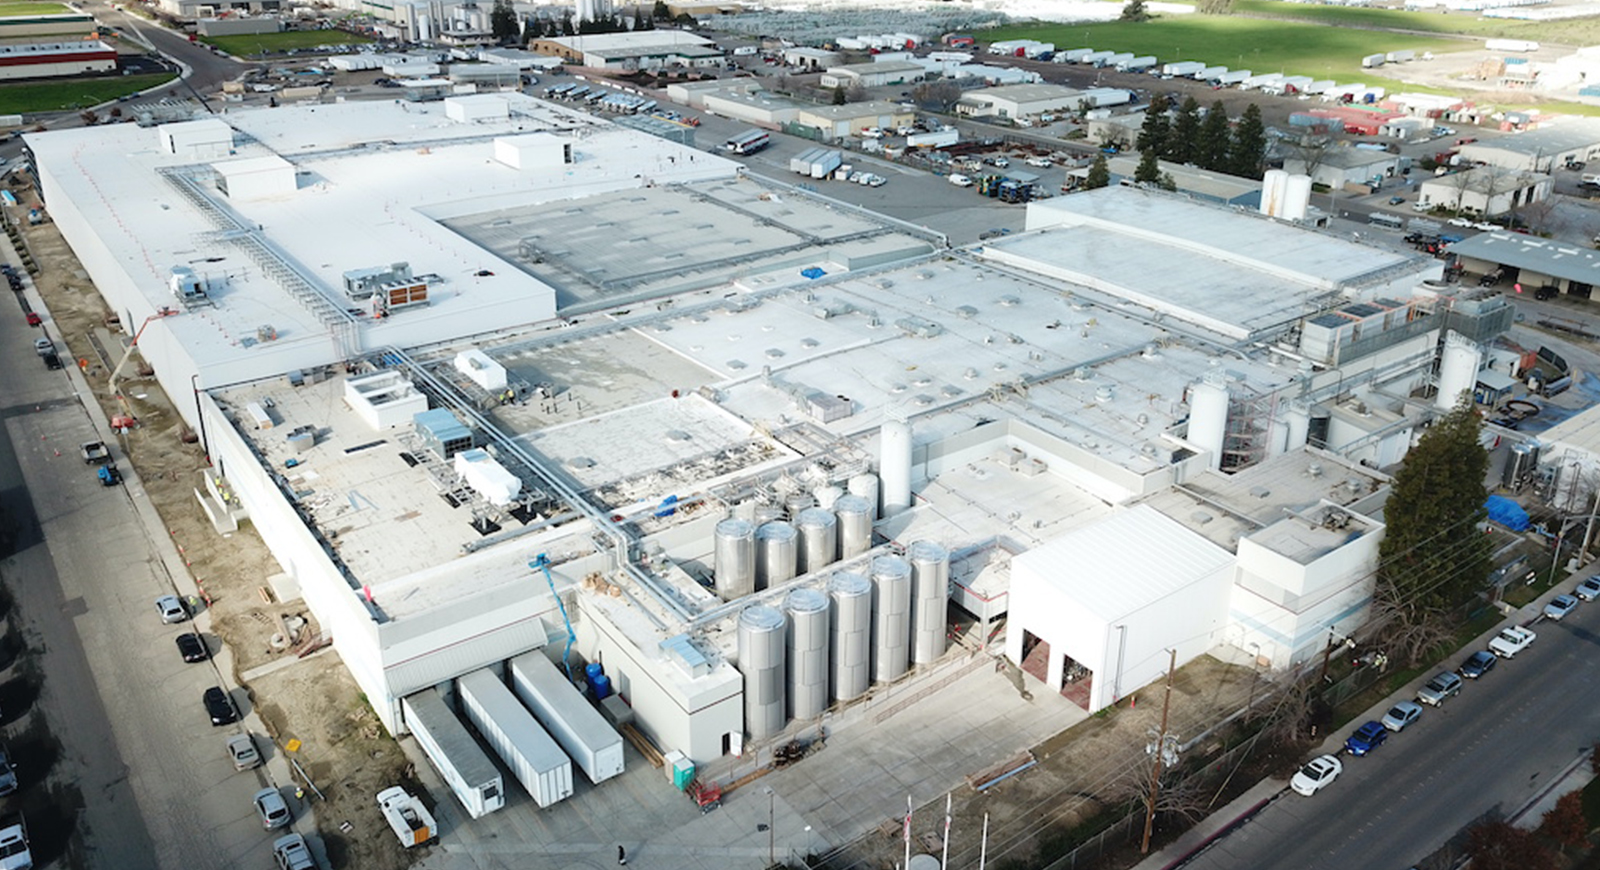 Super Stores Inc Turlock Industrial Manufacturing Warehouse Cold Storage Facility Plant General Contractor Building Exterior